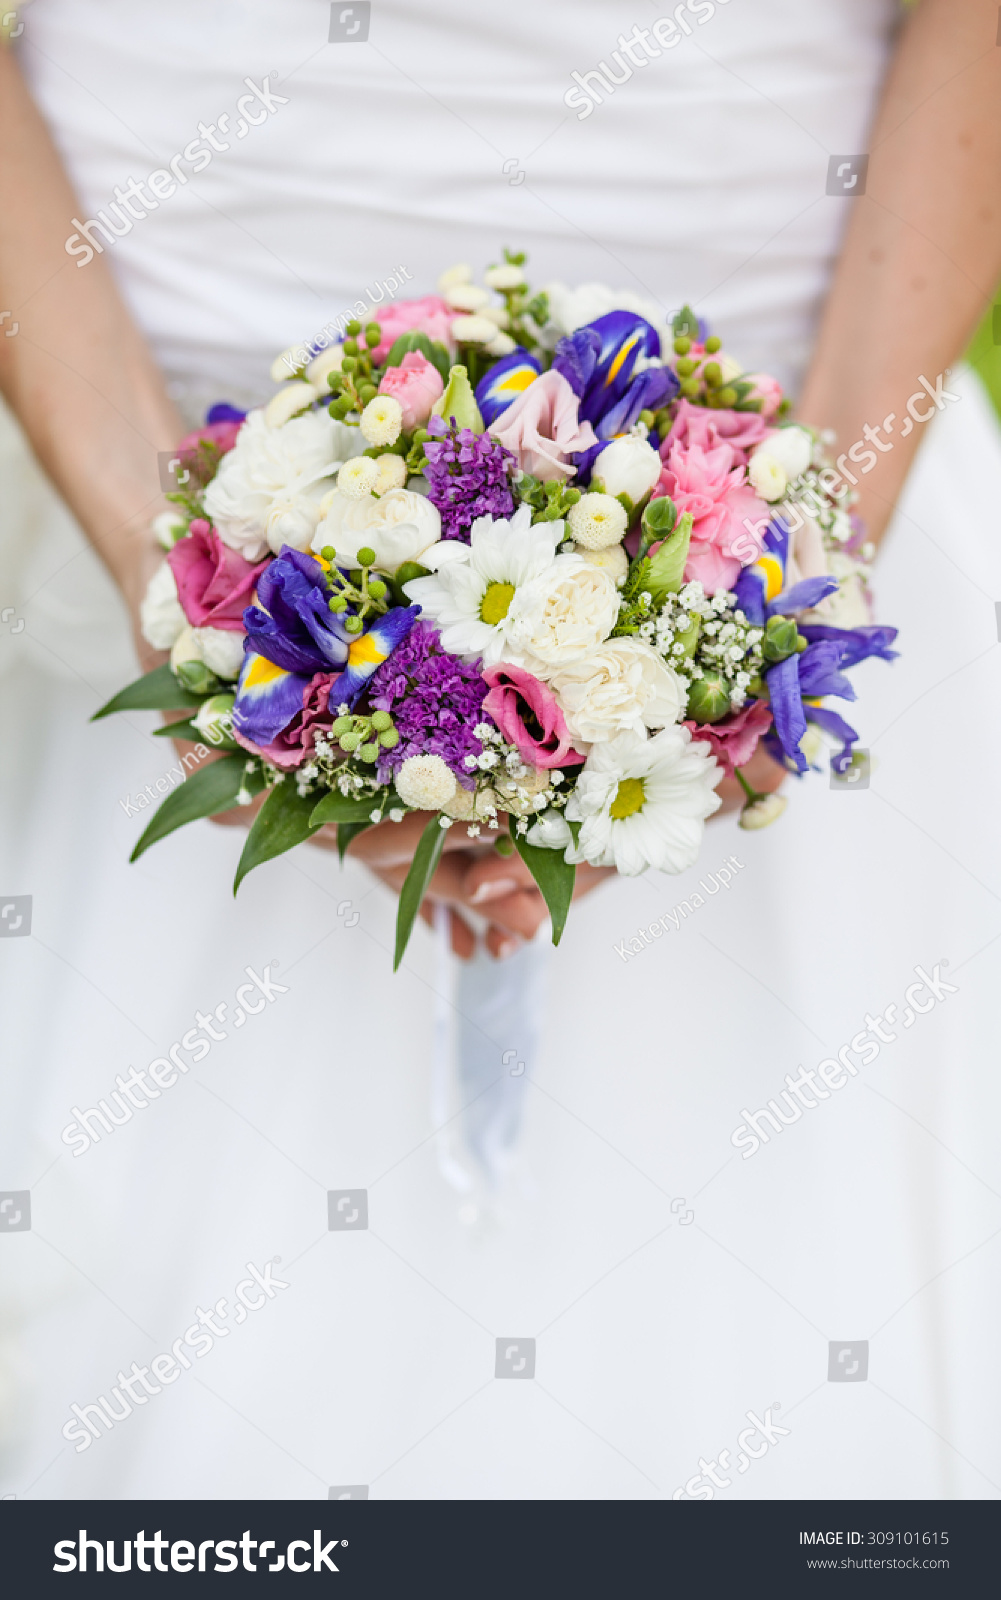 The Bride Holds A Wedding Bouquet Of Colorful Flowers And White